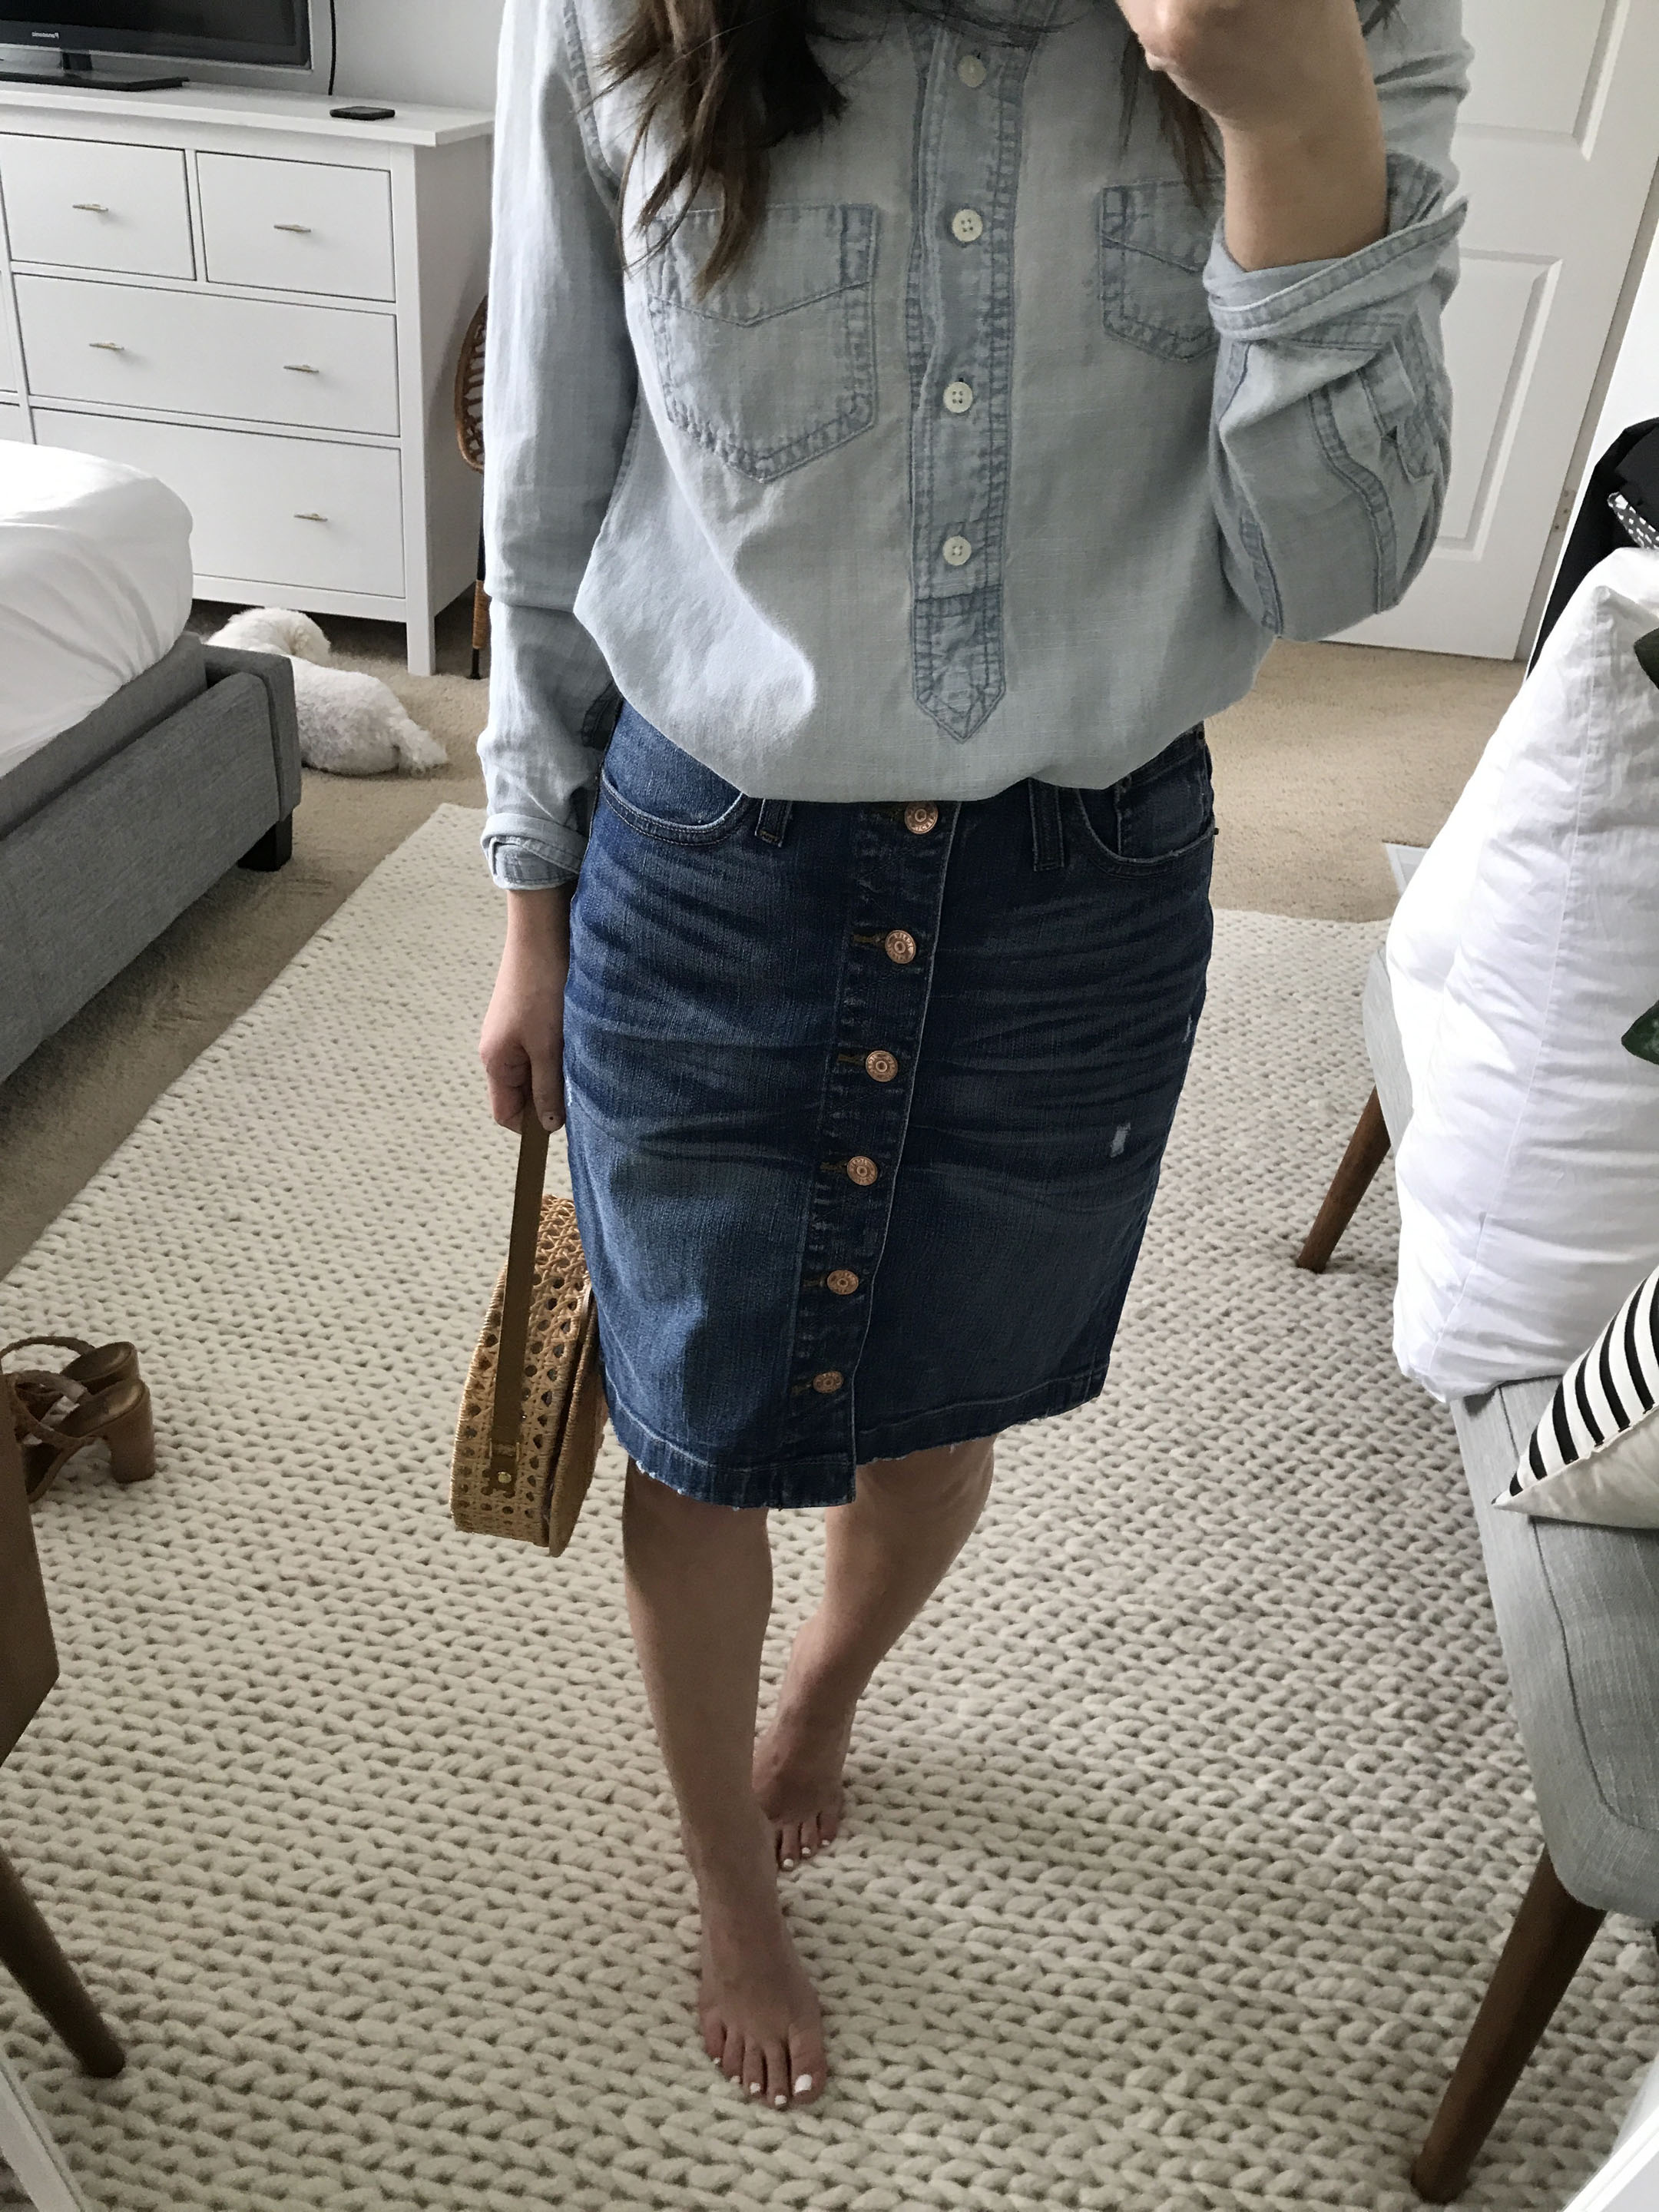 J.Crew denim pencil skirt 4